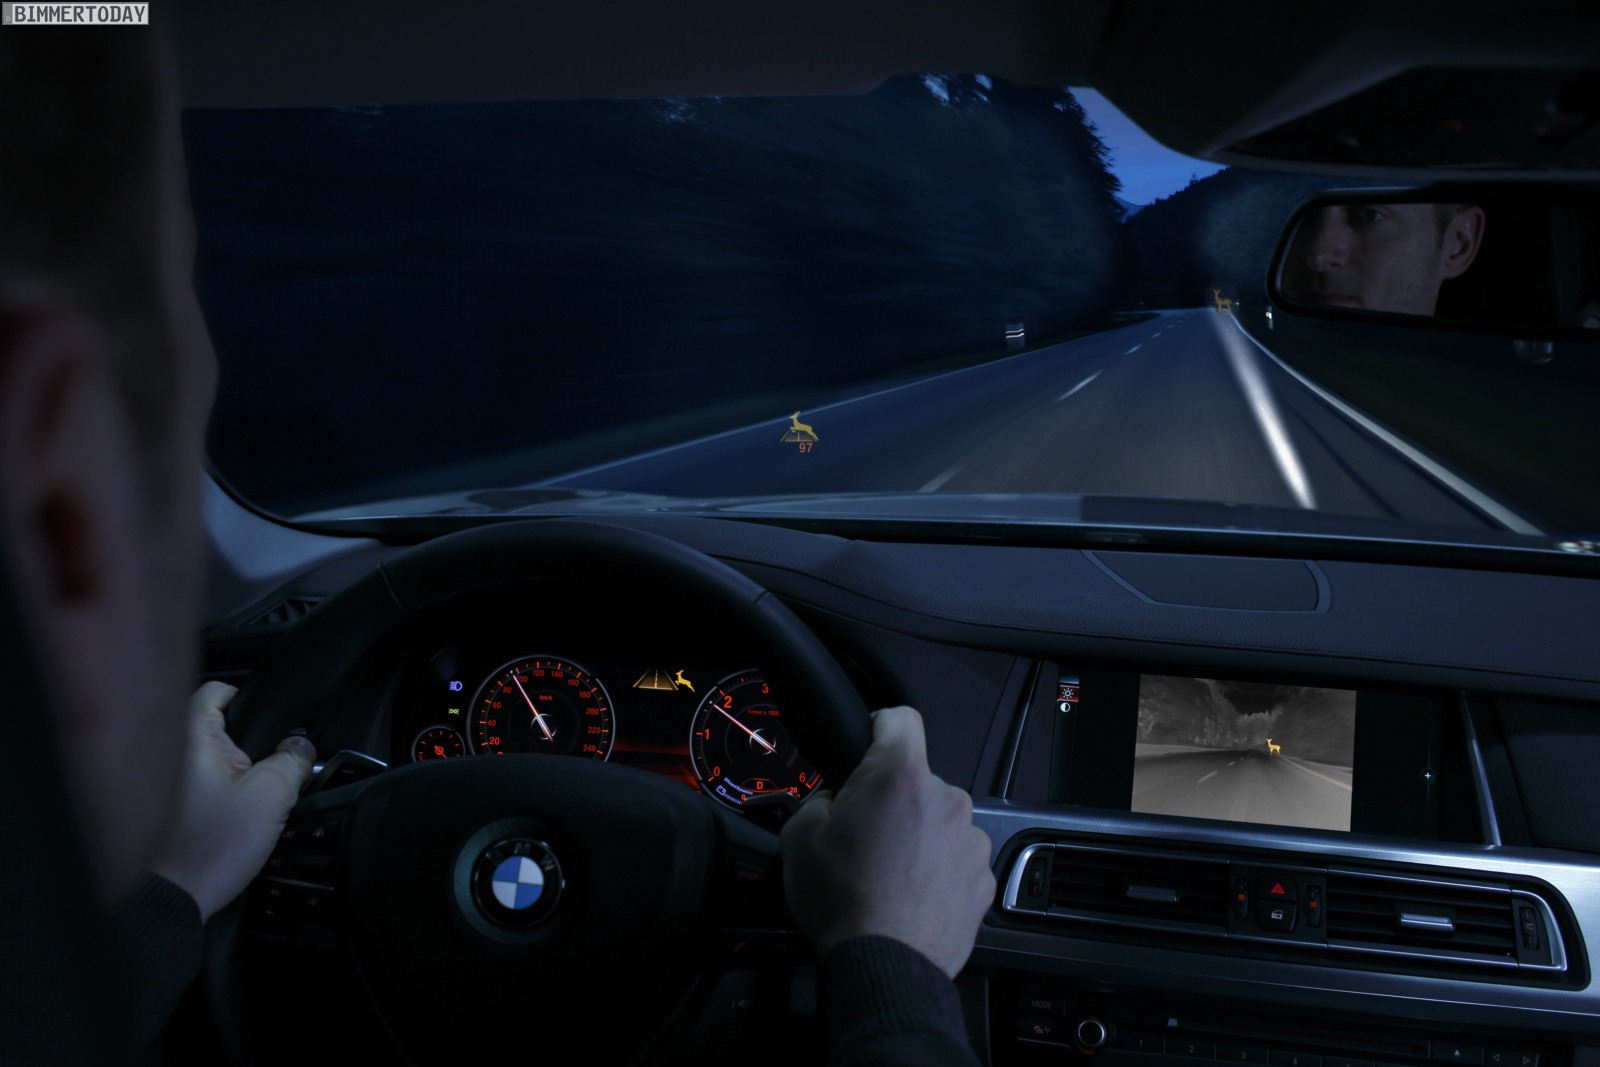 BMW-Night-Vision-Tier-Erkennung-Light-Spot-aktiv-anblinken-20131